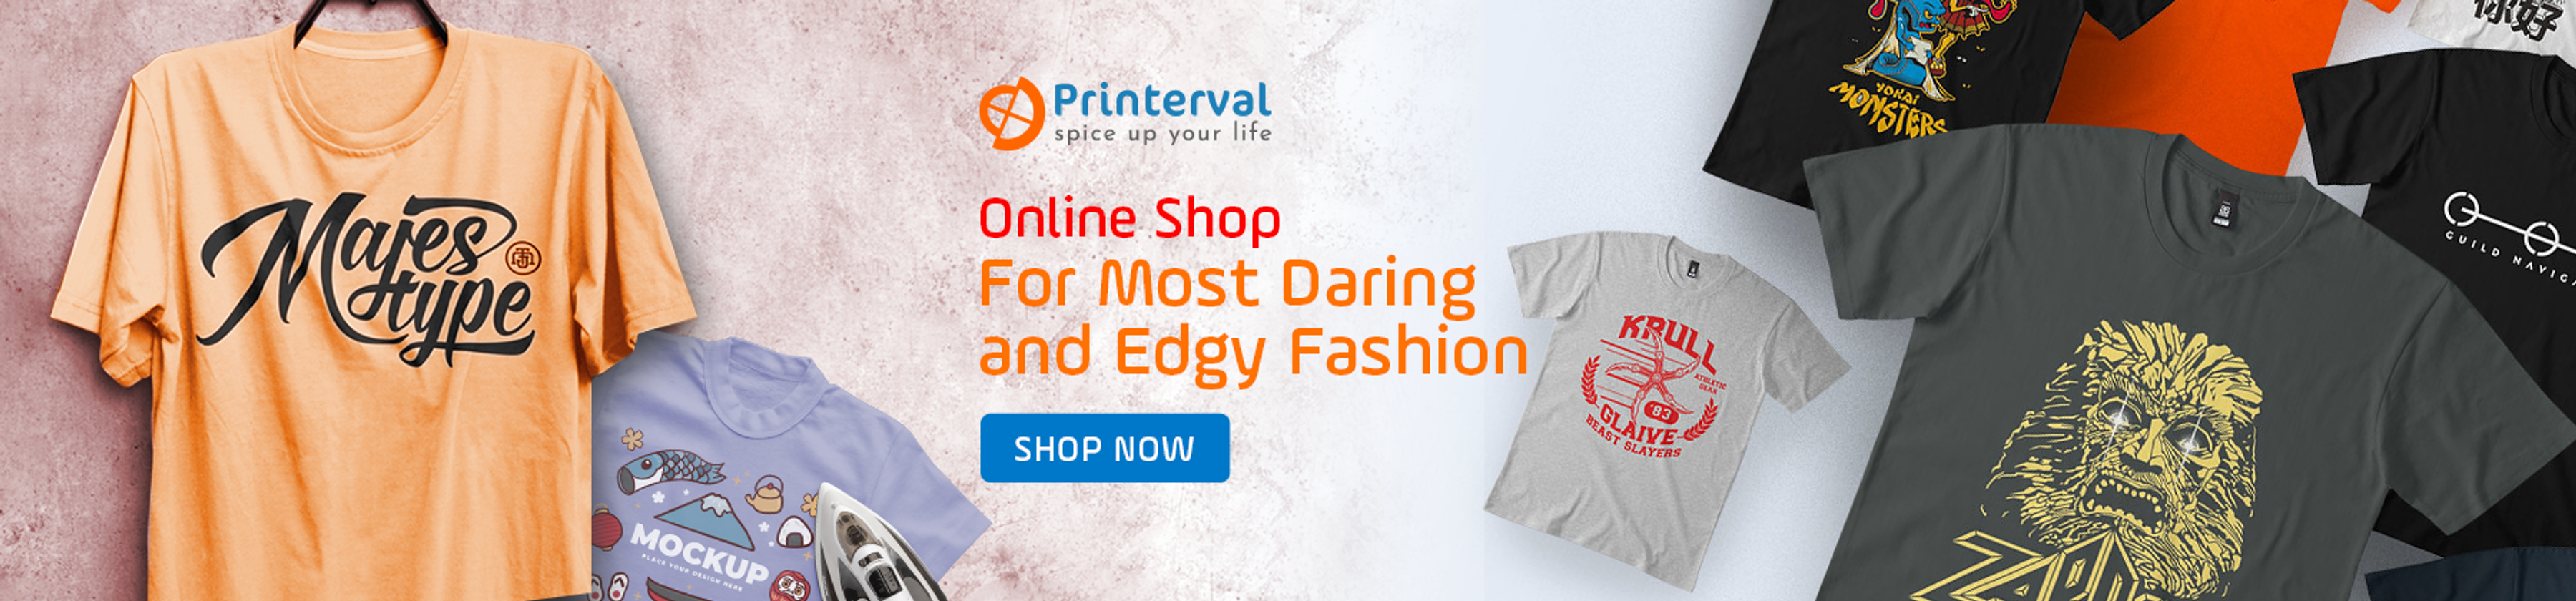 Online Shop For Most Daring and Edgy Fashion